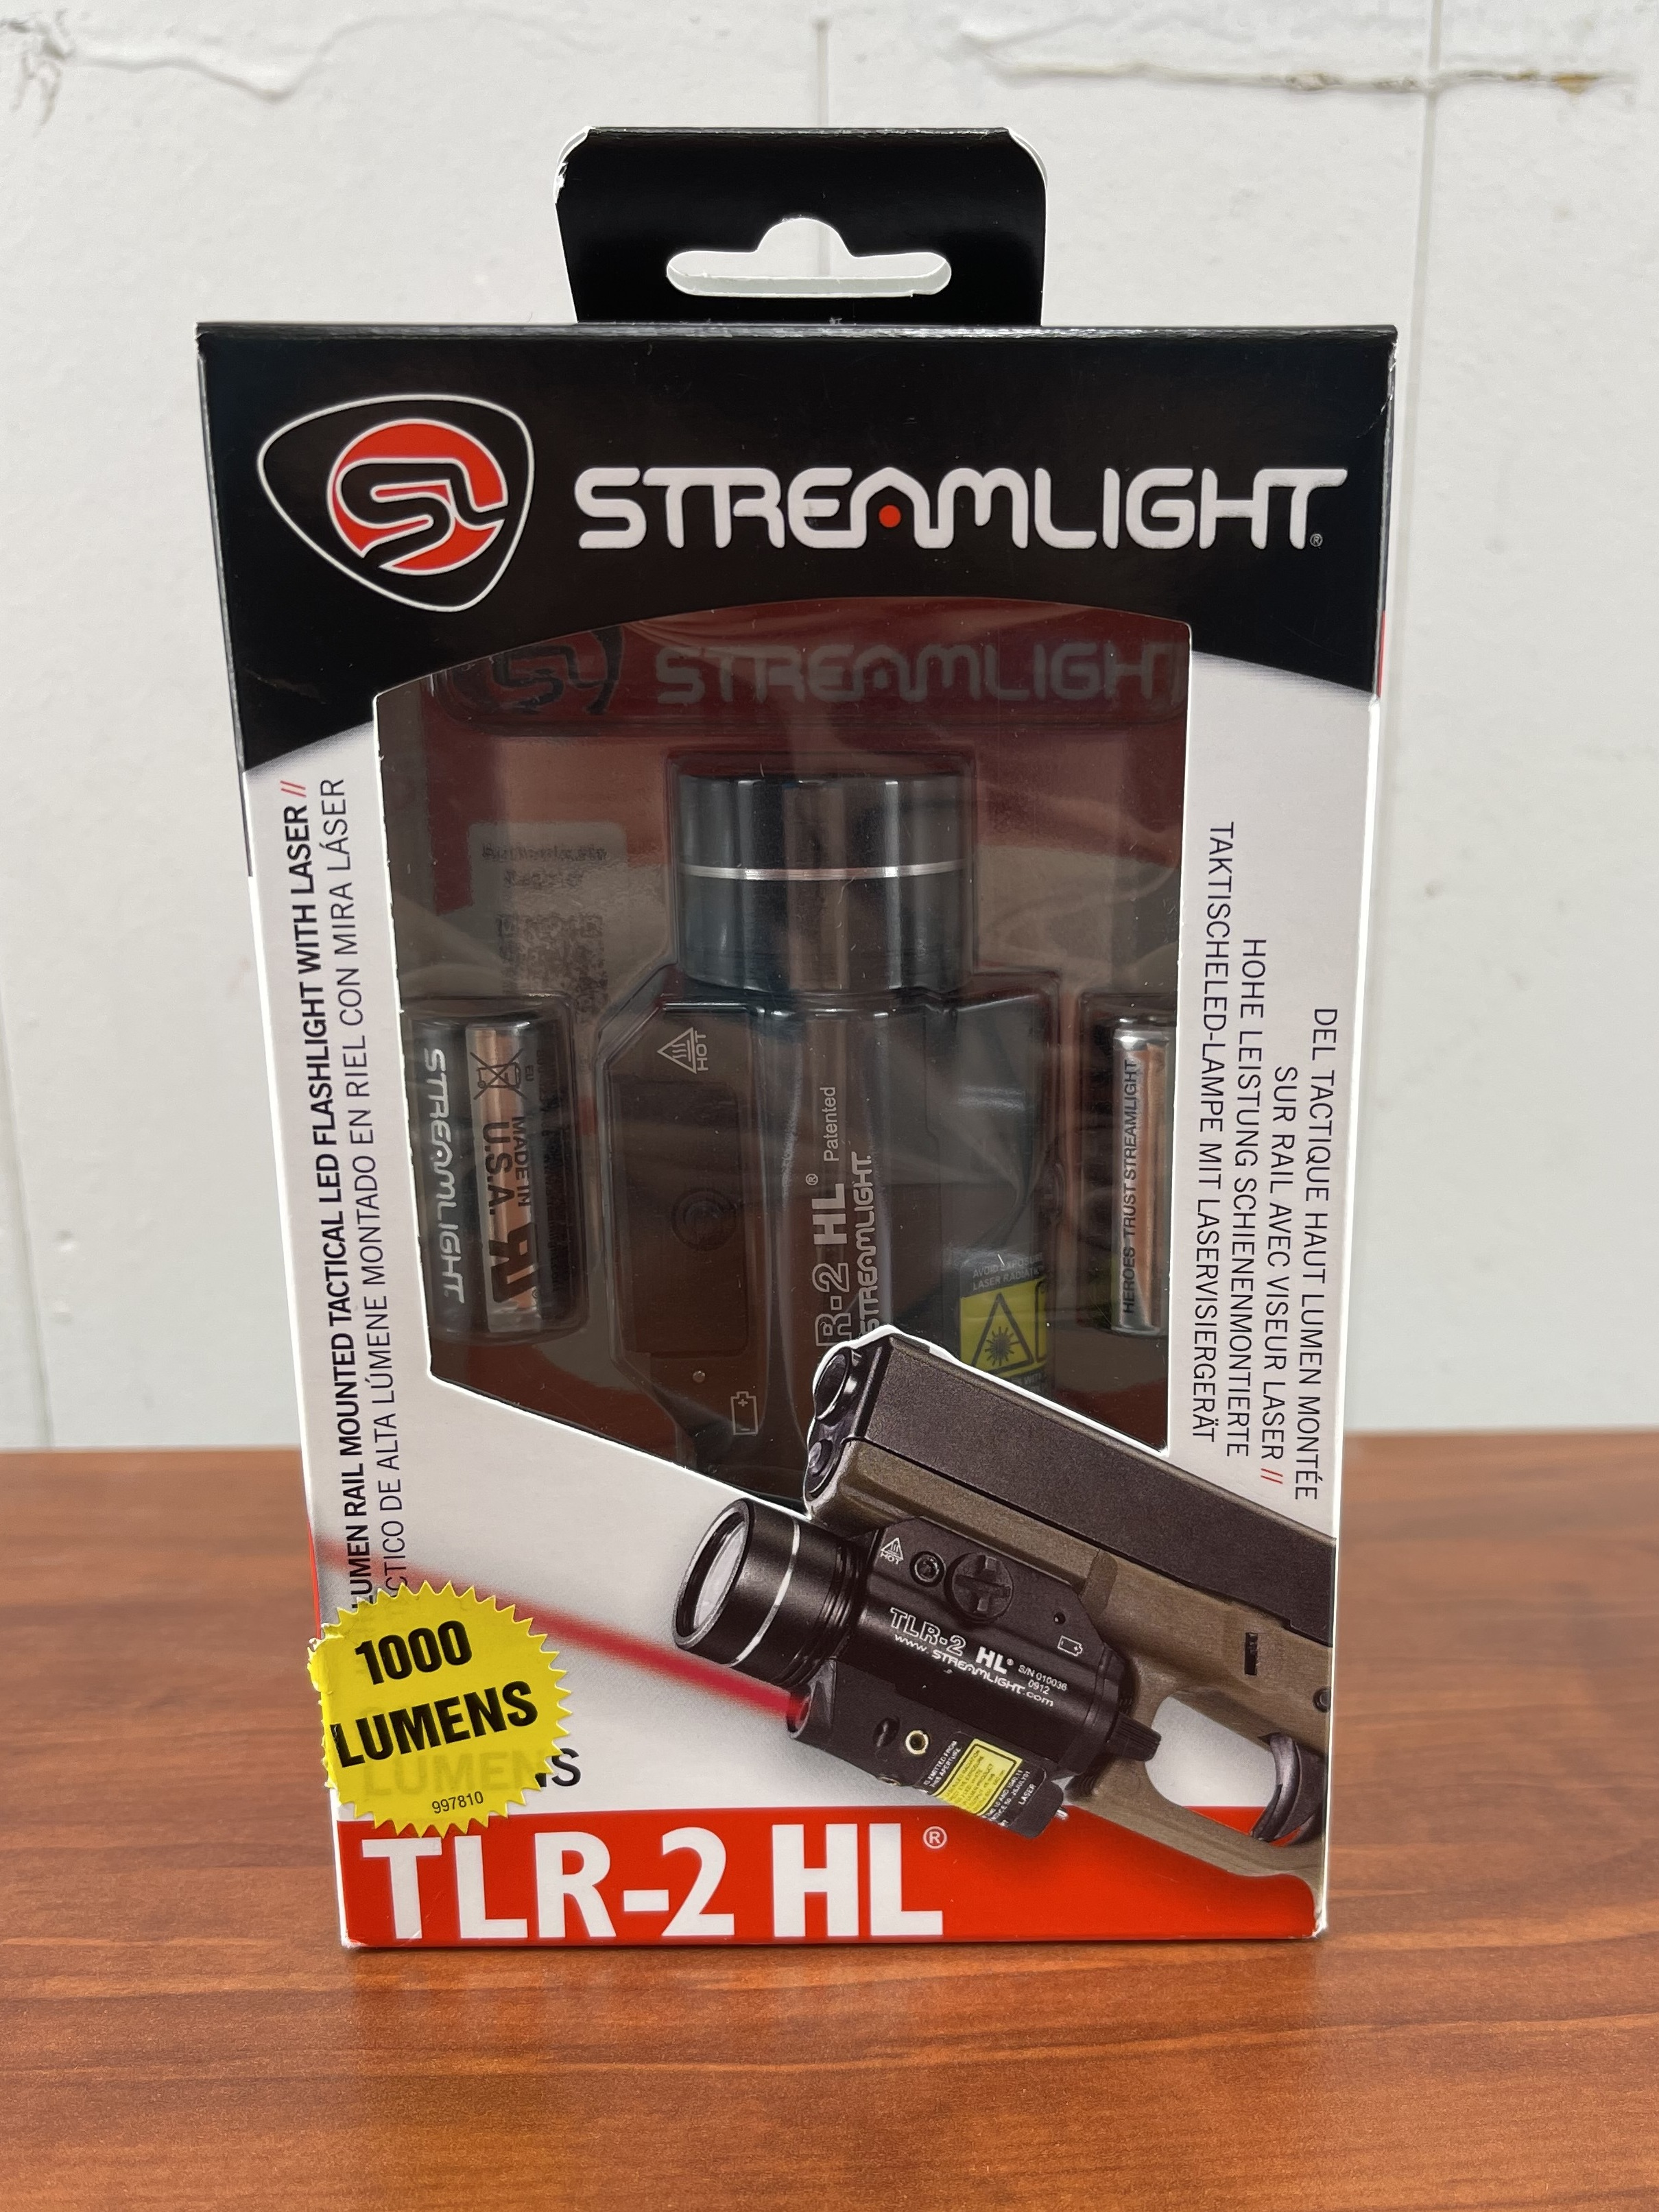 StreamLight TLR-2 HL LED High Lumen Rail Mounted Flashlight With Red Laser